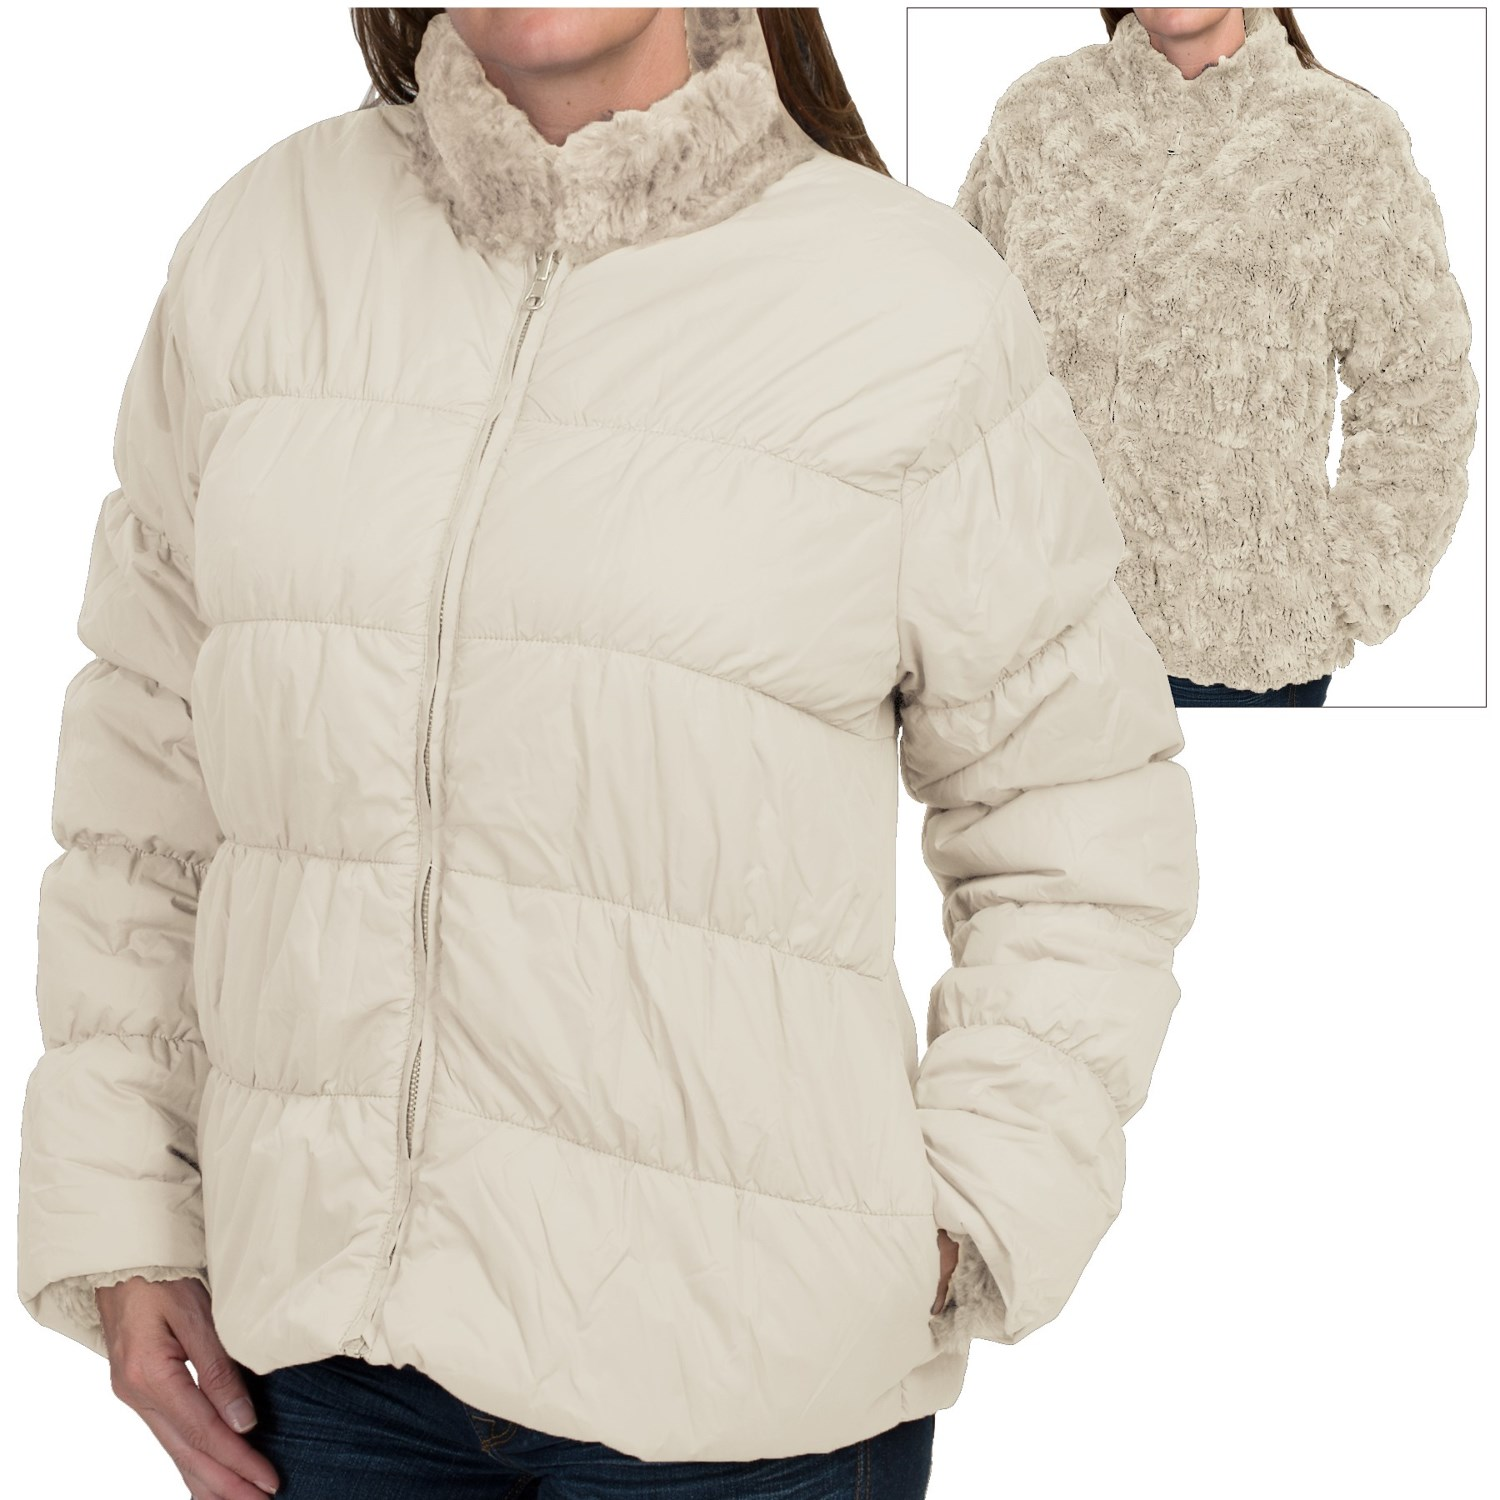 Submit Your Own Image · dylan Reversible Puffer Jacket